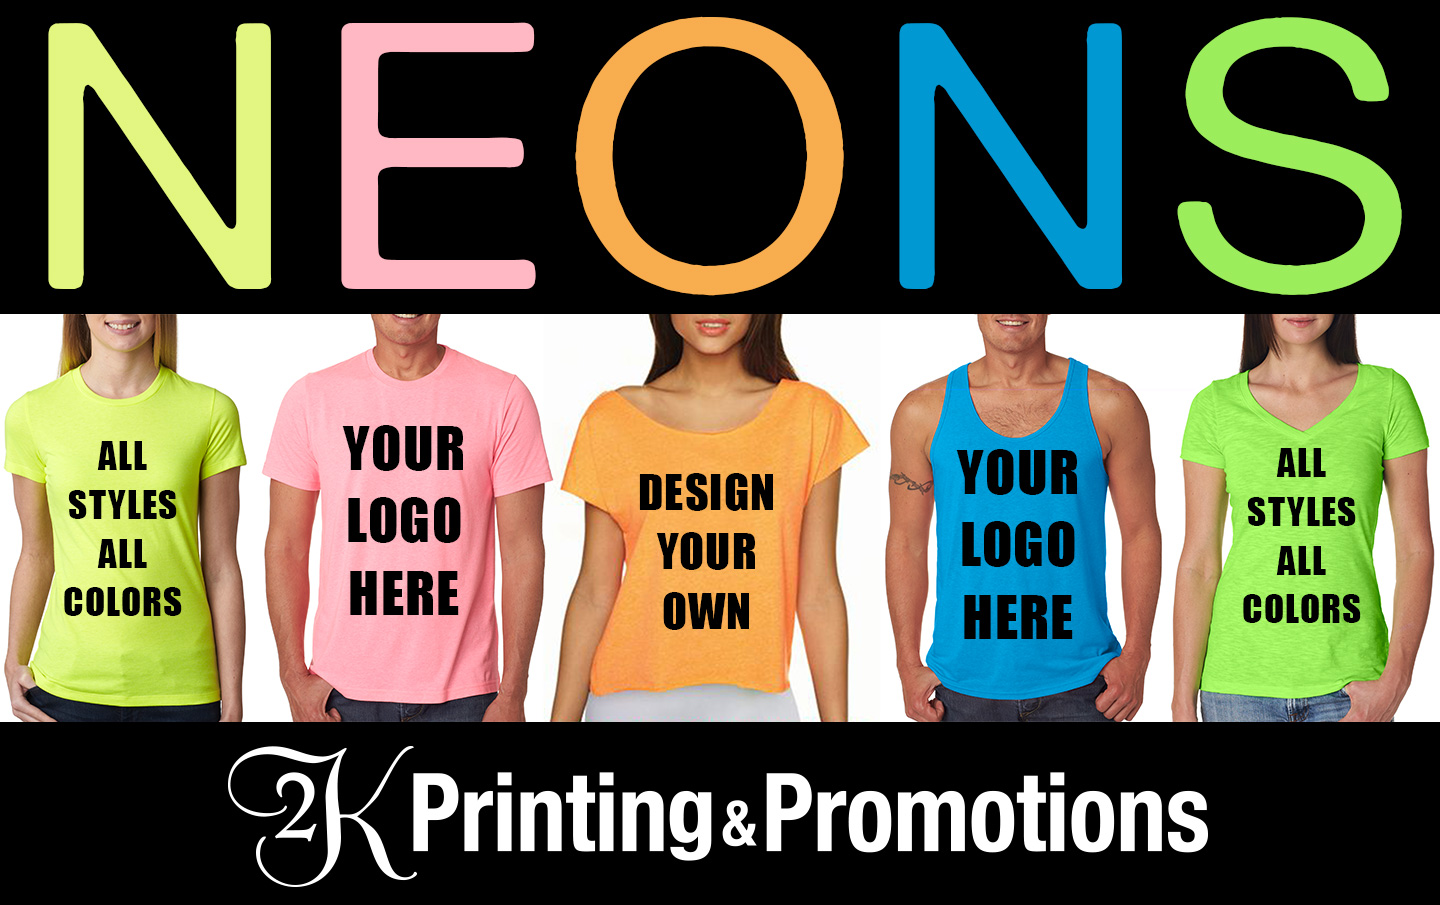 Custom Printed Neon Shirts In All Styles And Colors 2k